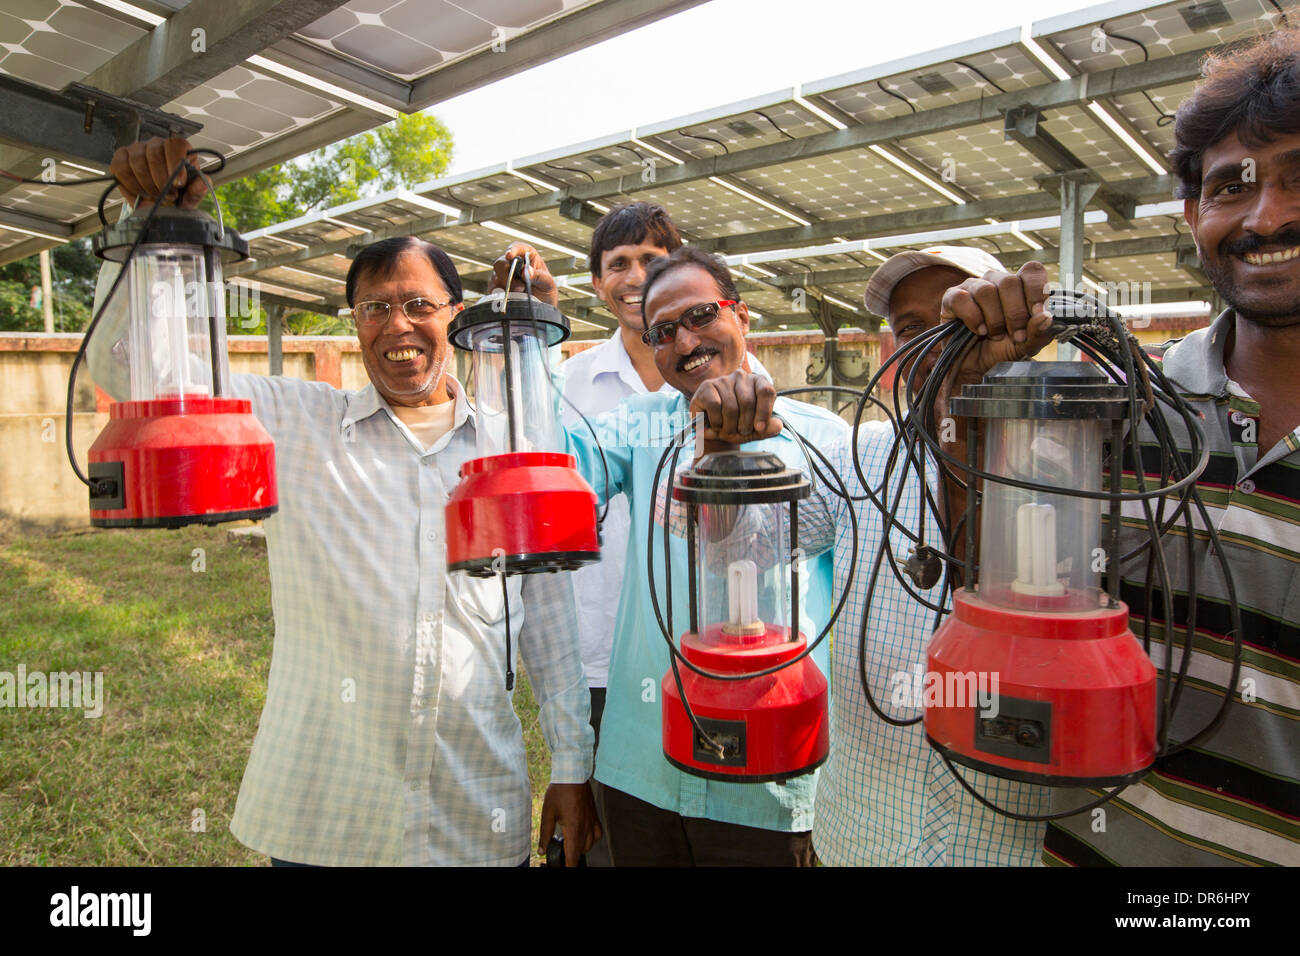 A WWF project to supply electricity to a remote island in the Sunderbans, a low lying area of the Ganges Delta in Eastern India, that is very vulnerable to sea level rise. Prior to this project the subsistence farmers had no access to electricity. This shot shows villagers with their new solar lanterns. Before instalation of the solar panels they had to burn kerosene for lighting. - Stock Image